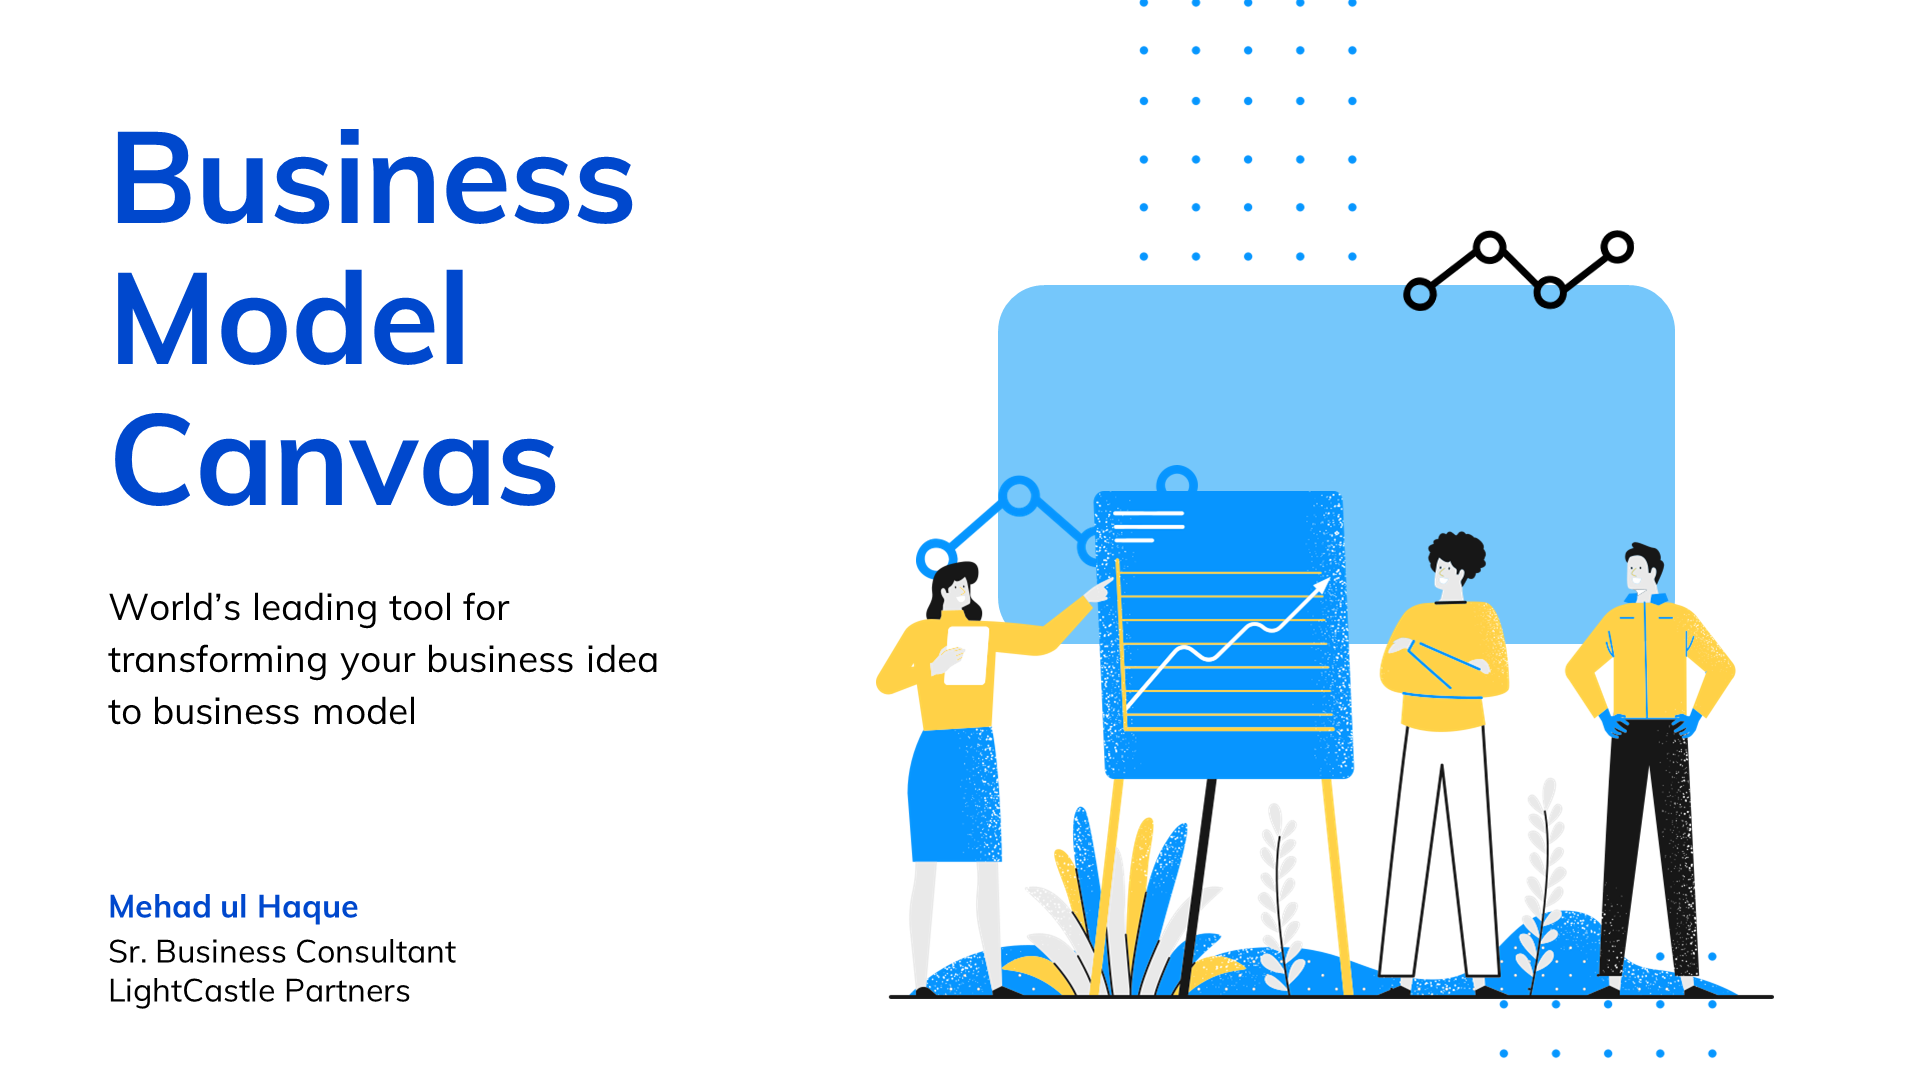 The Art of Business Model Canvas by LightCastle Partners